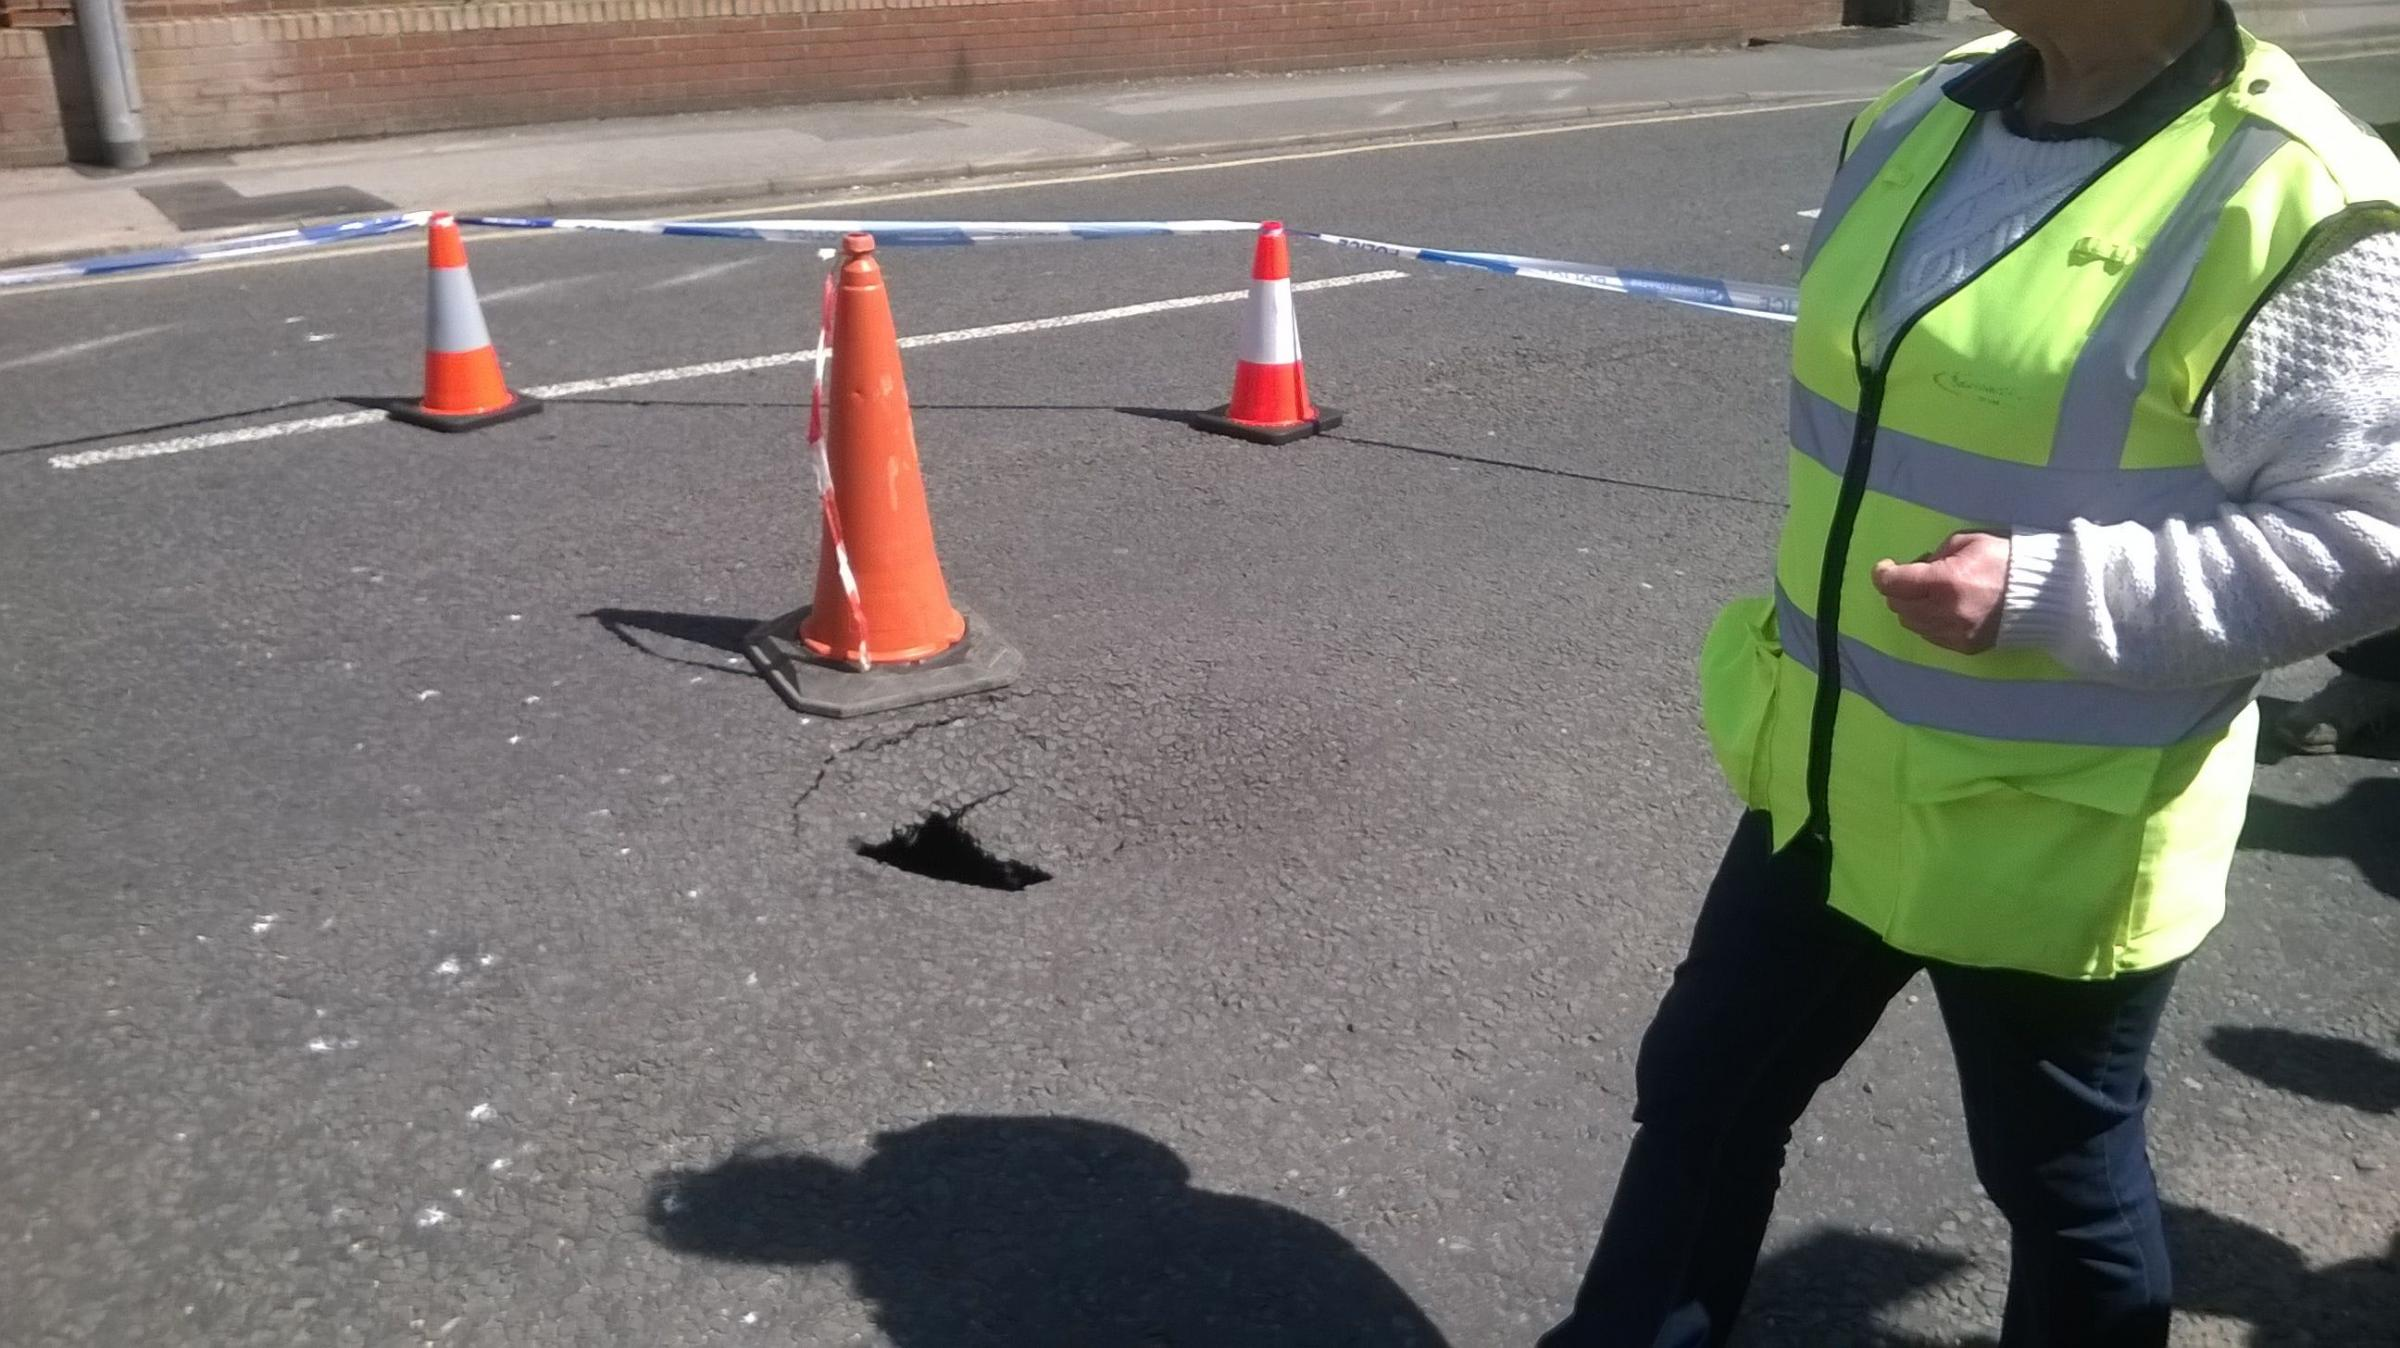 Part of Boscombe road cordoned off after hole appears